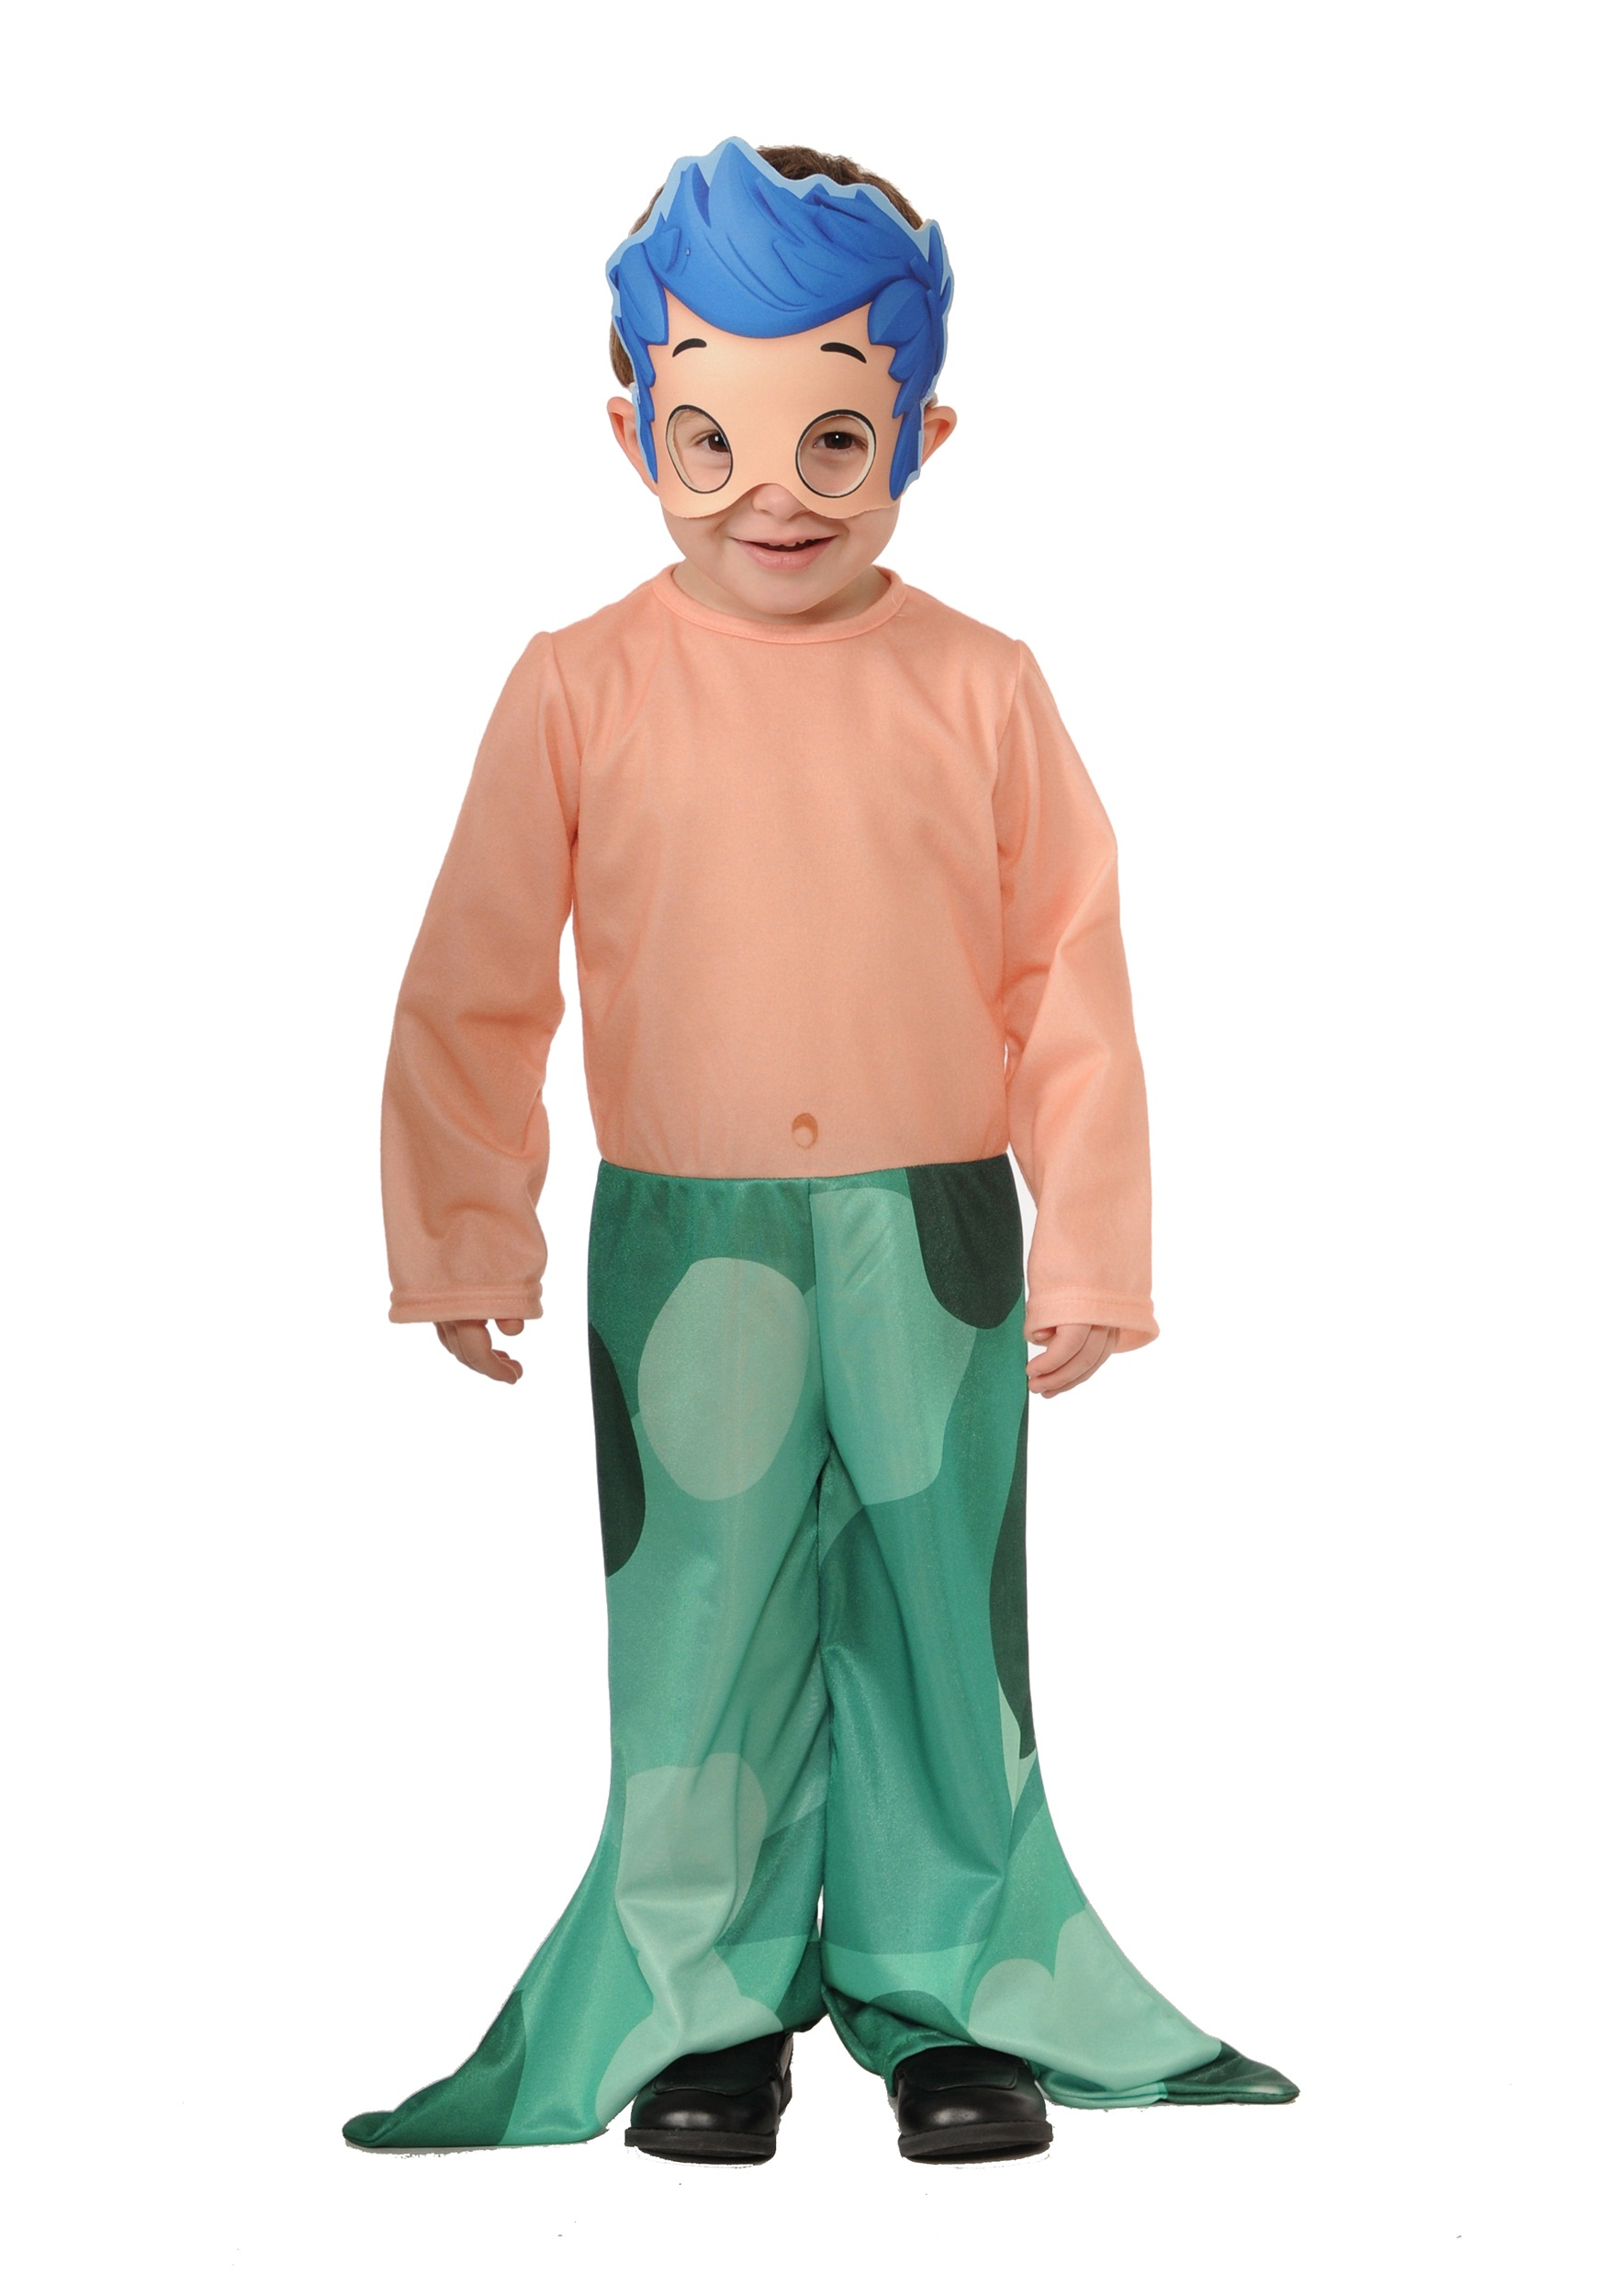 Toddler Bubble Guppies Gil Costume  sc 1 st  Halloween Costumes & Toddler Bubble Guppies Gil Costume - Halloween Costumes